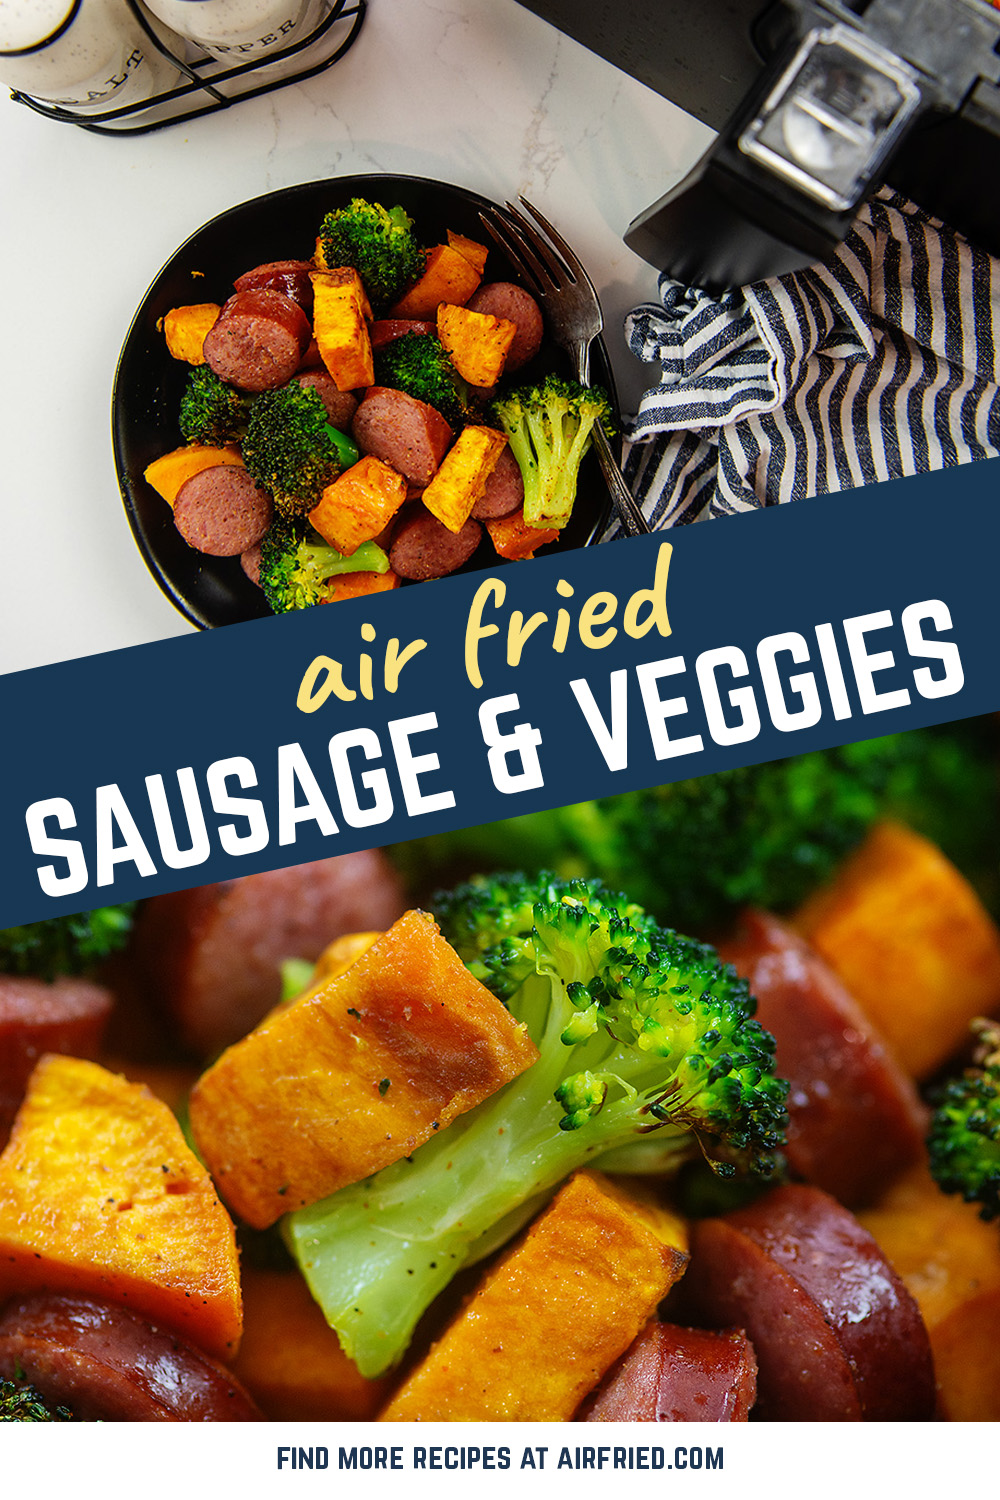 For an easy lunch or dinner that is anything but boring, try these air fried sausage and veggies.  They are packed with flavor and an interesting blend of textures!